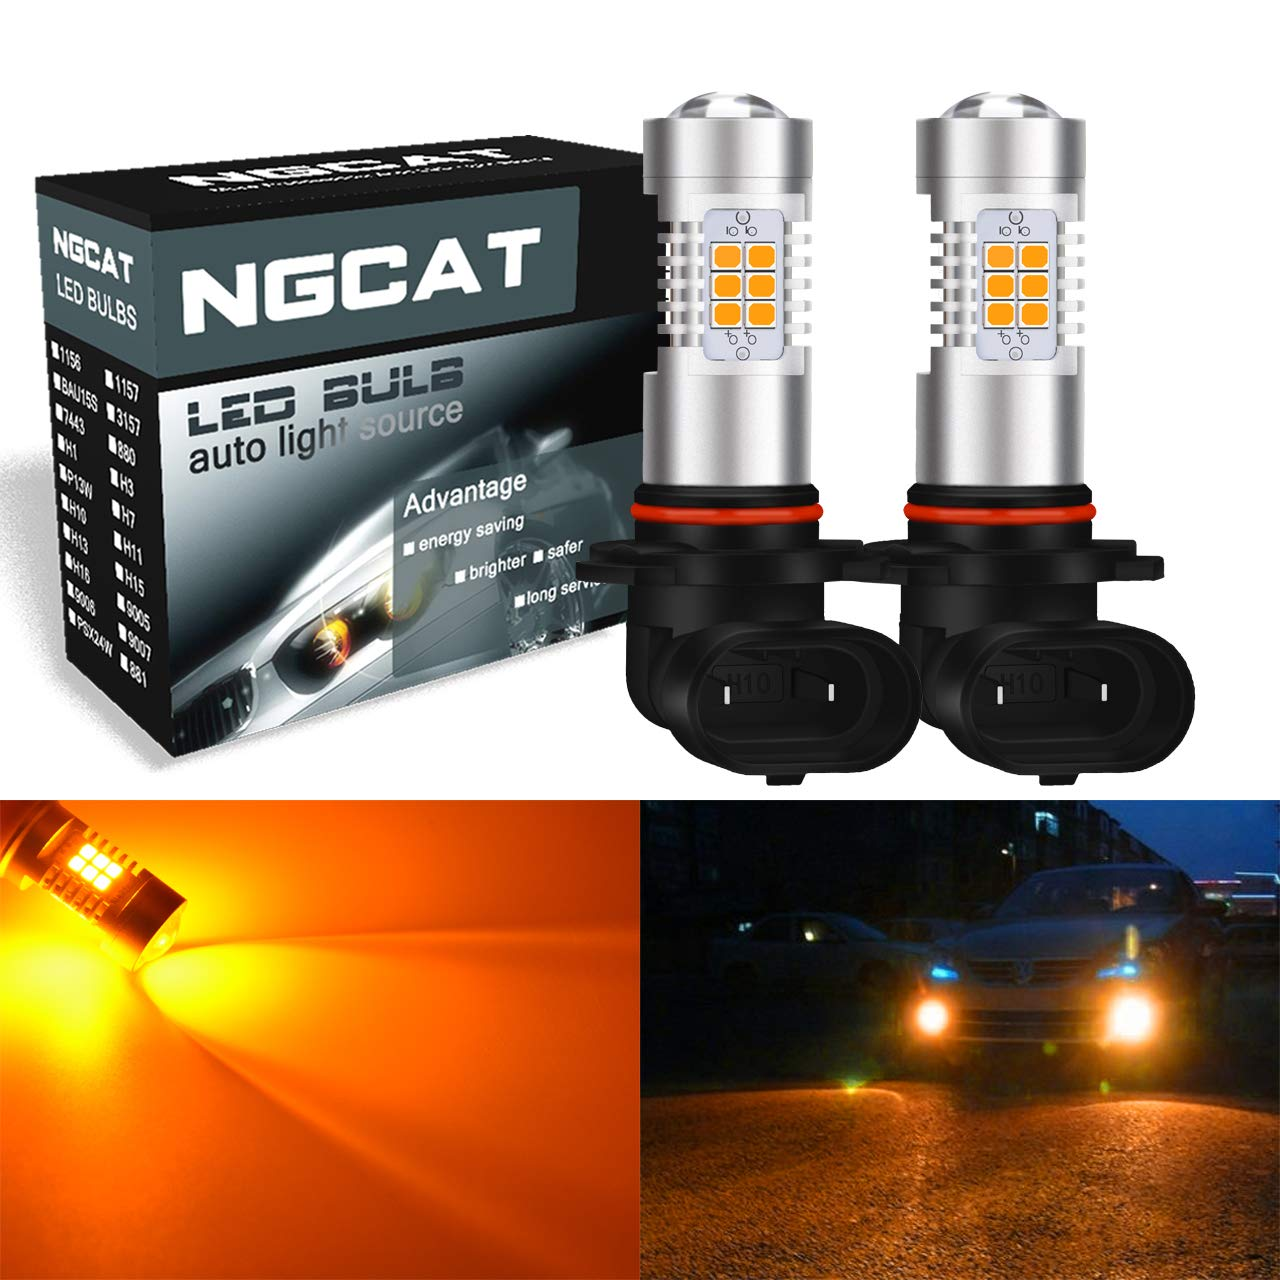 NGCAT Auto LED Bulb 2PCS P13W DRL Fog Light Replacement 2835 21 SMD Chipsets car Driving Daytime Running Lights, Amber 10-16V 10.5W